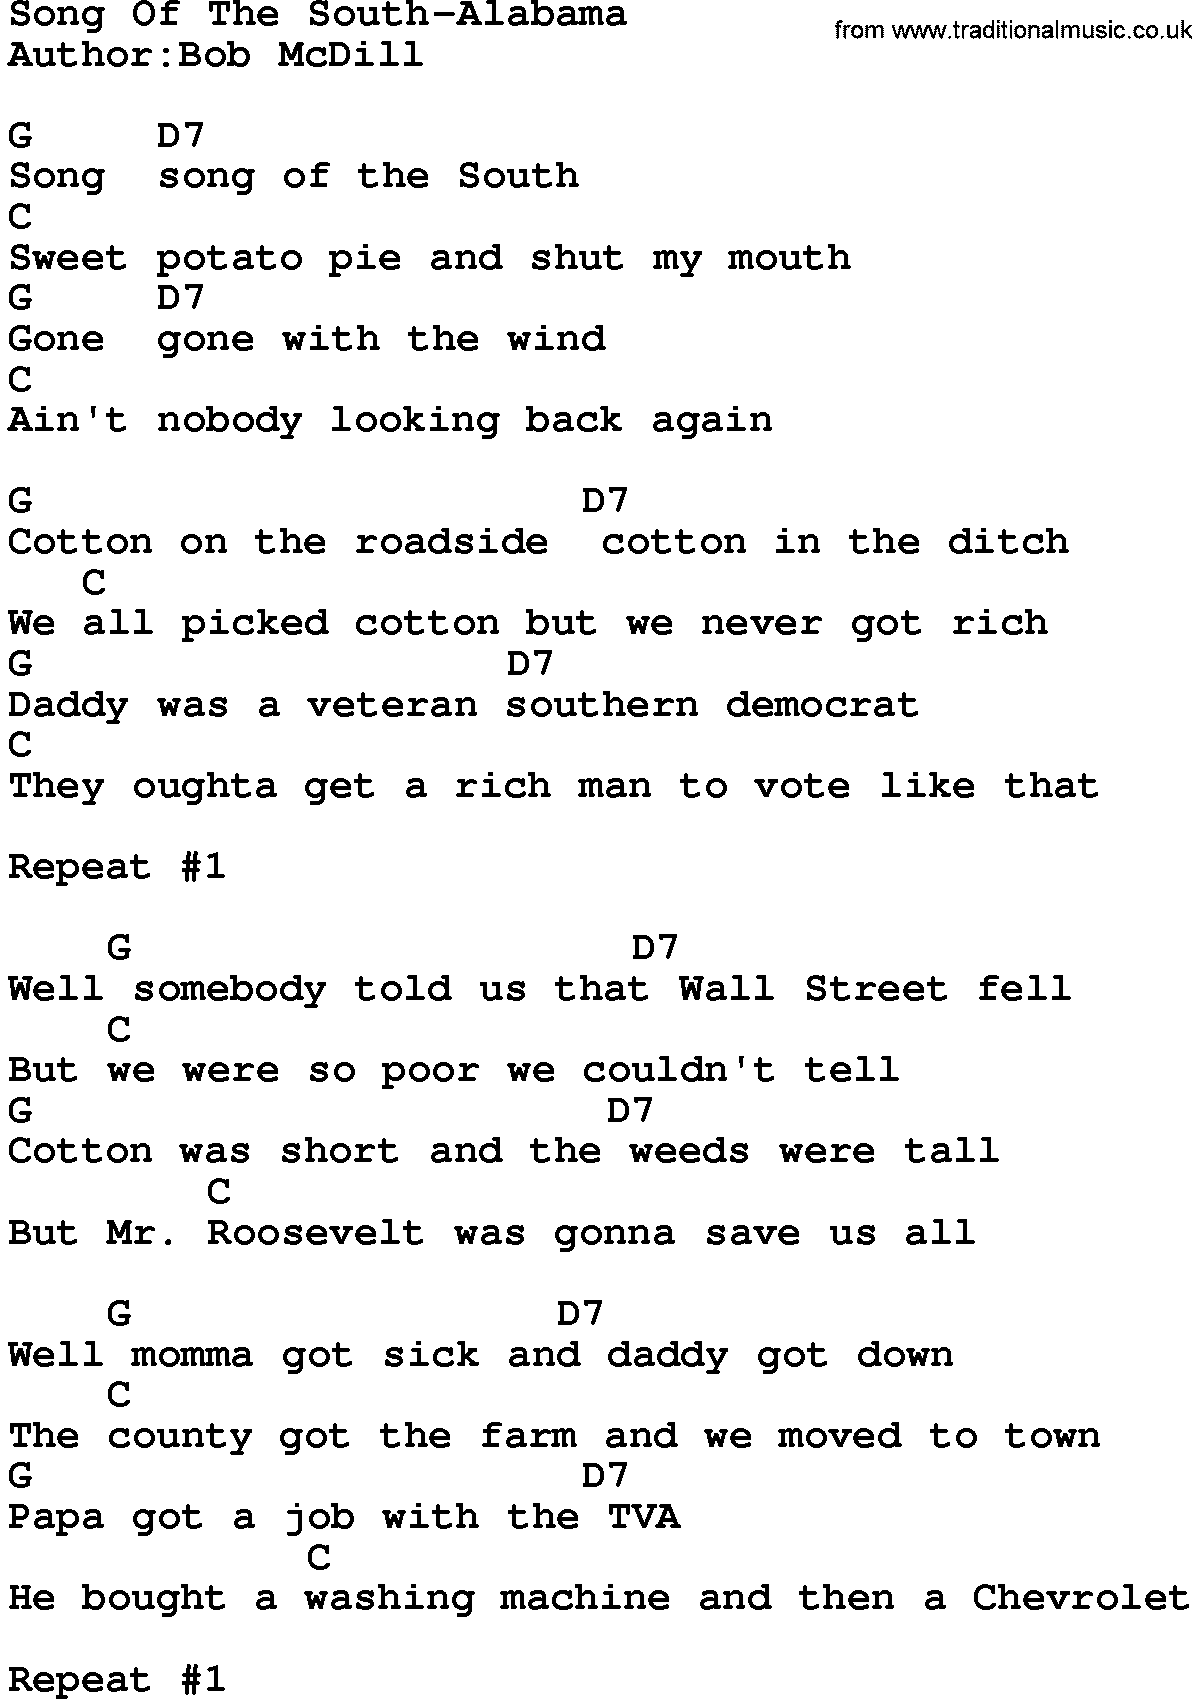 Guitar Chords For Song Of The South Ltt